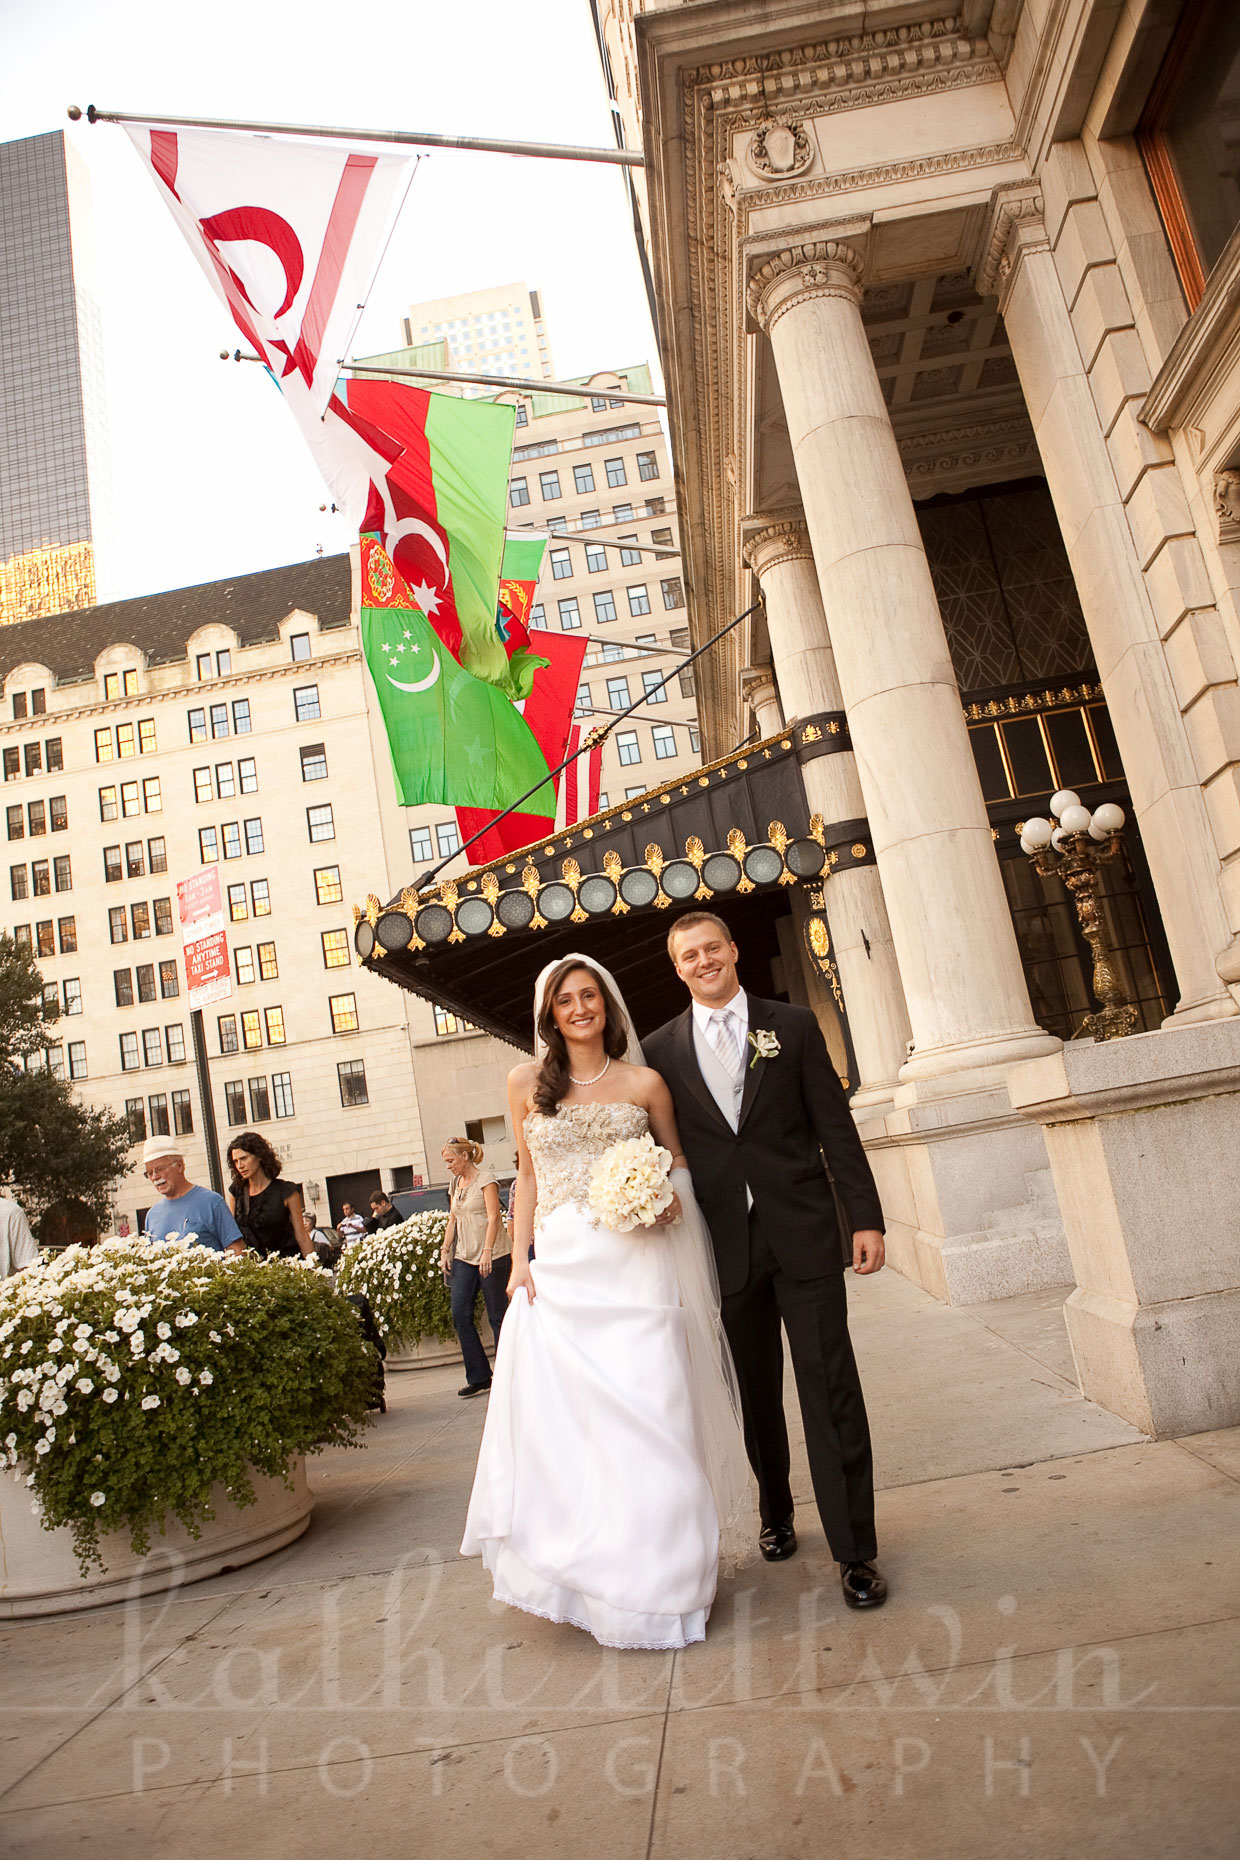 Kathi_Littwin_Photography_Plaza_NYC_Wedding-2030